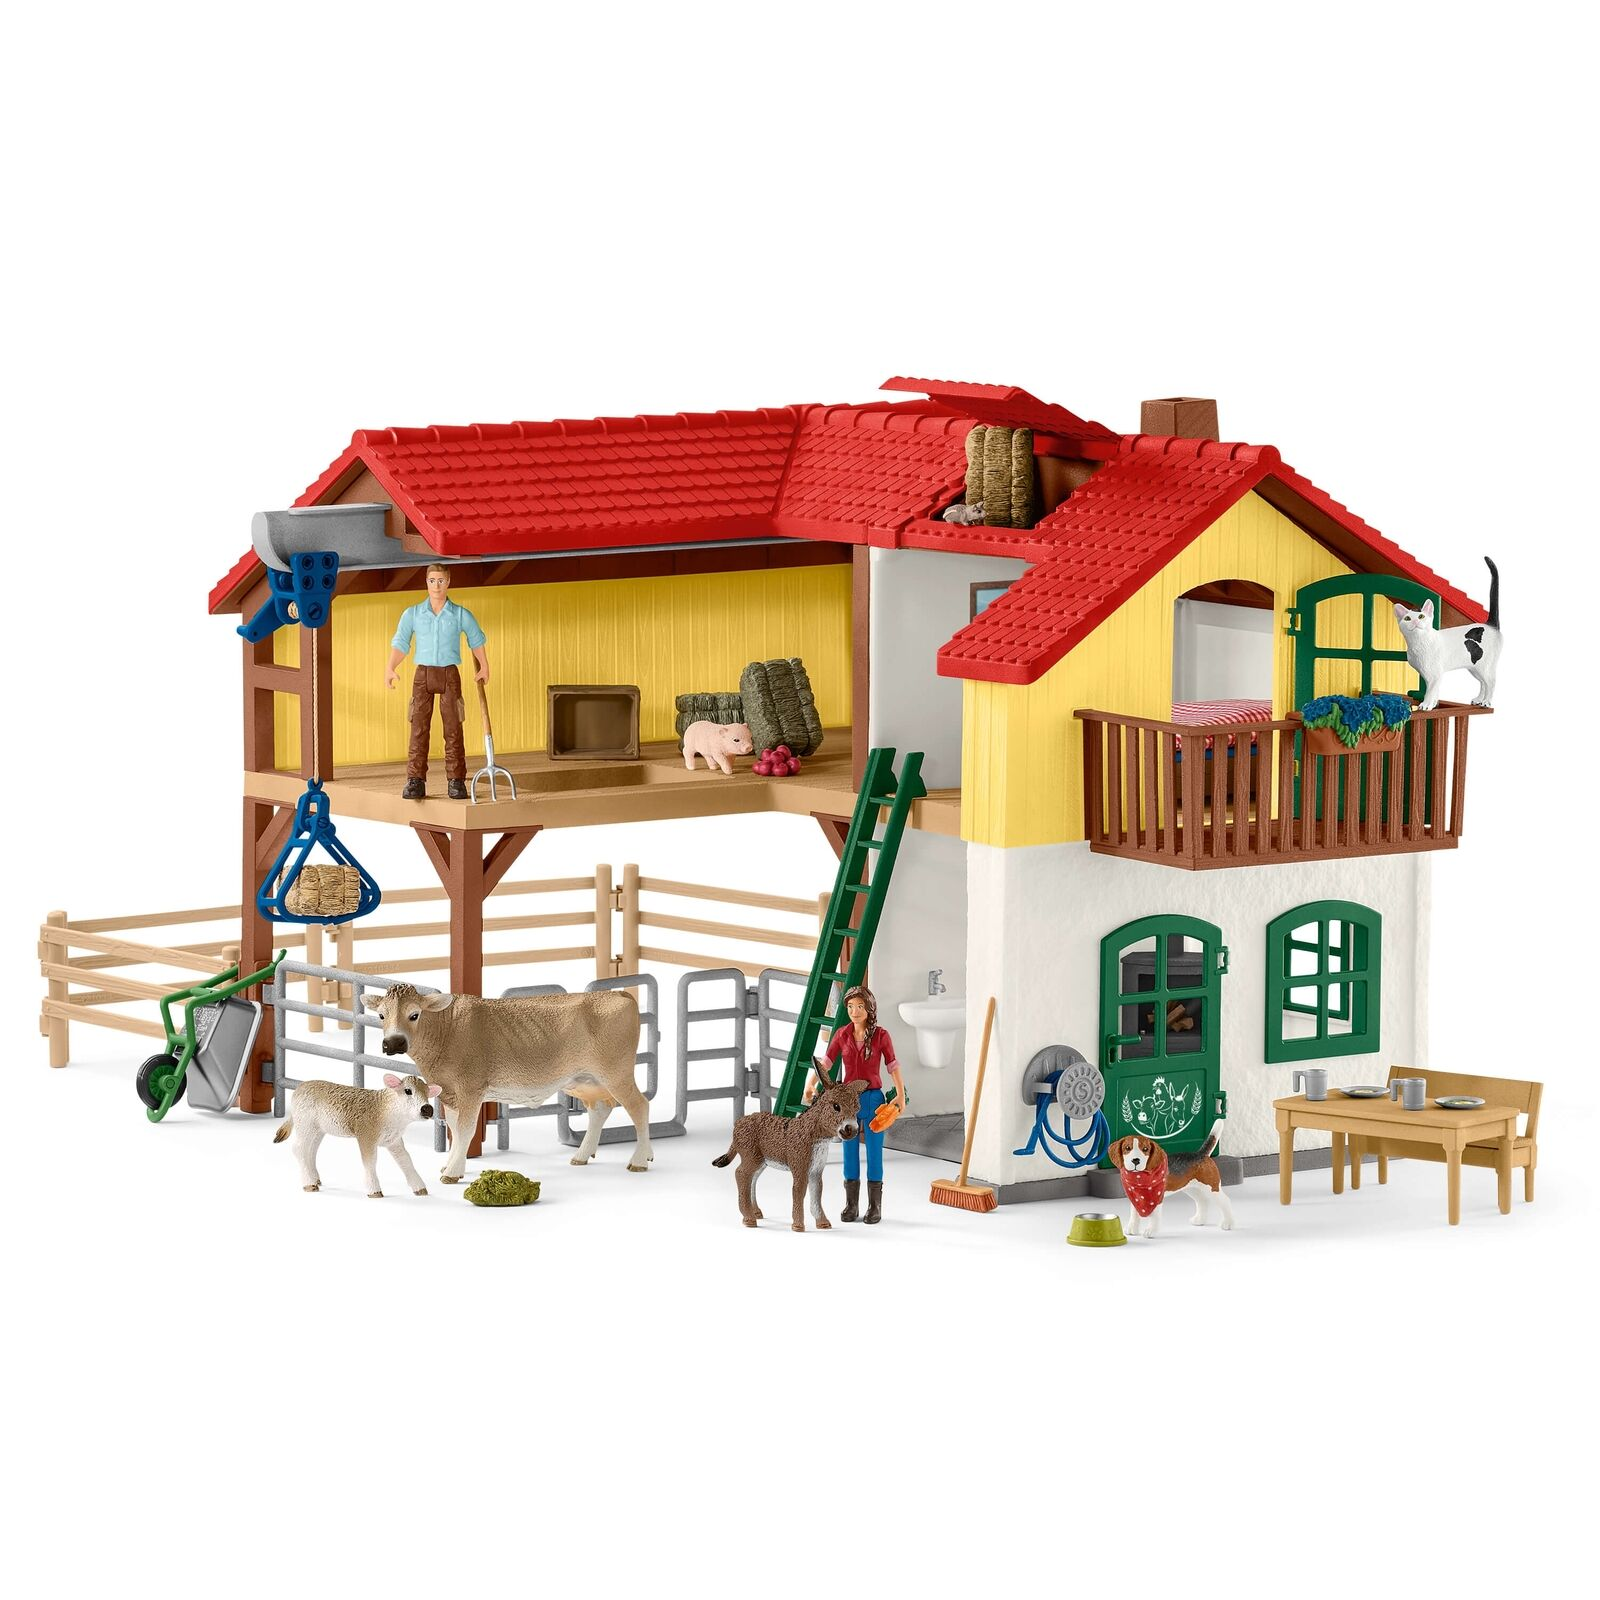 Schleich 42407 - Large Farm House med accessoarer - Farm värld New